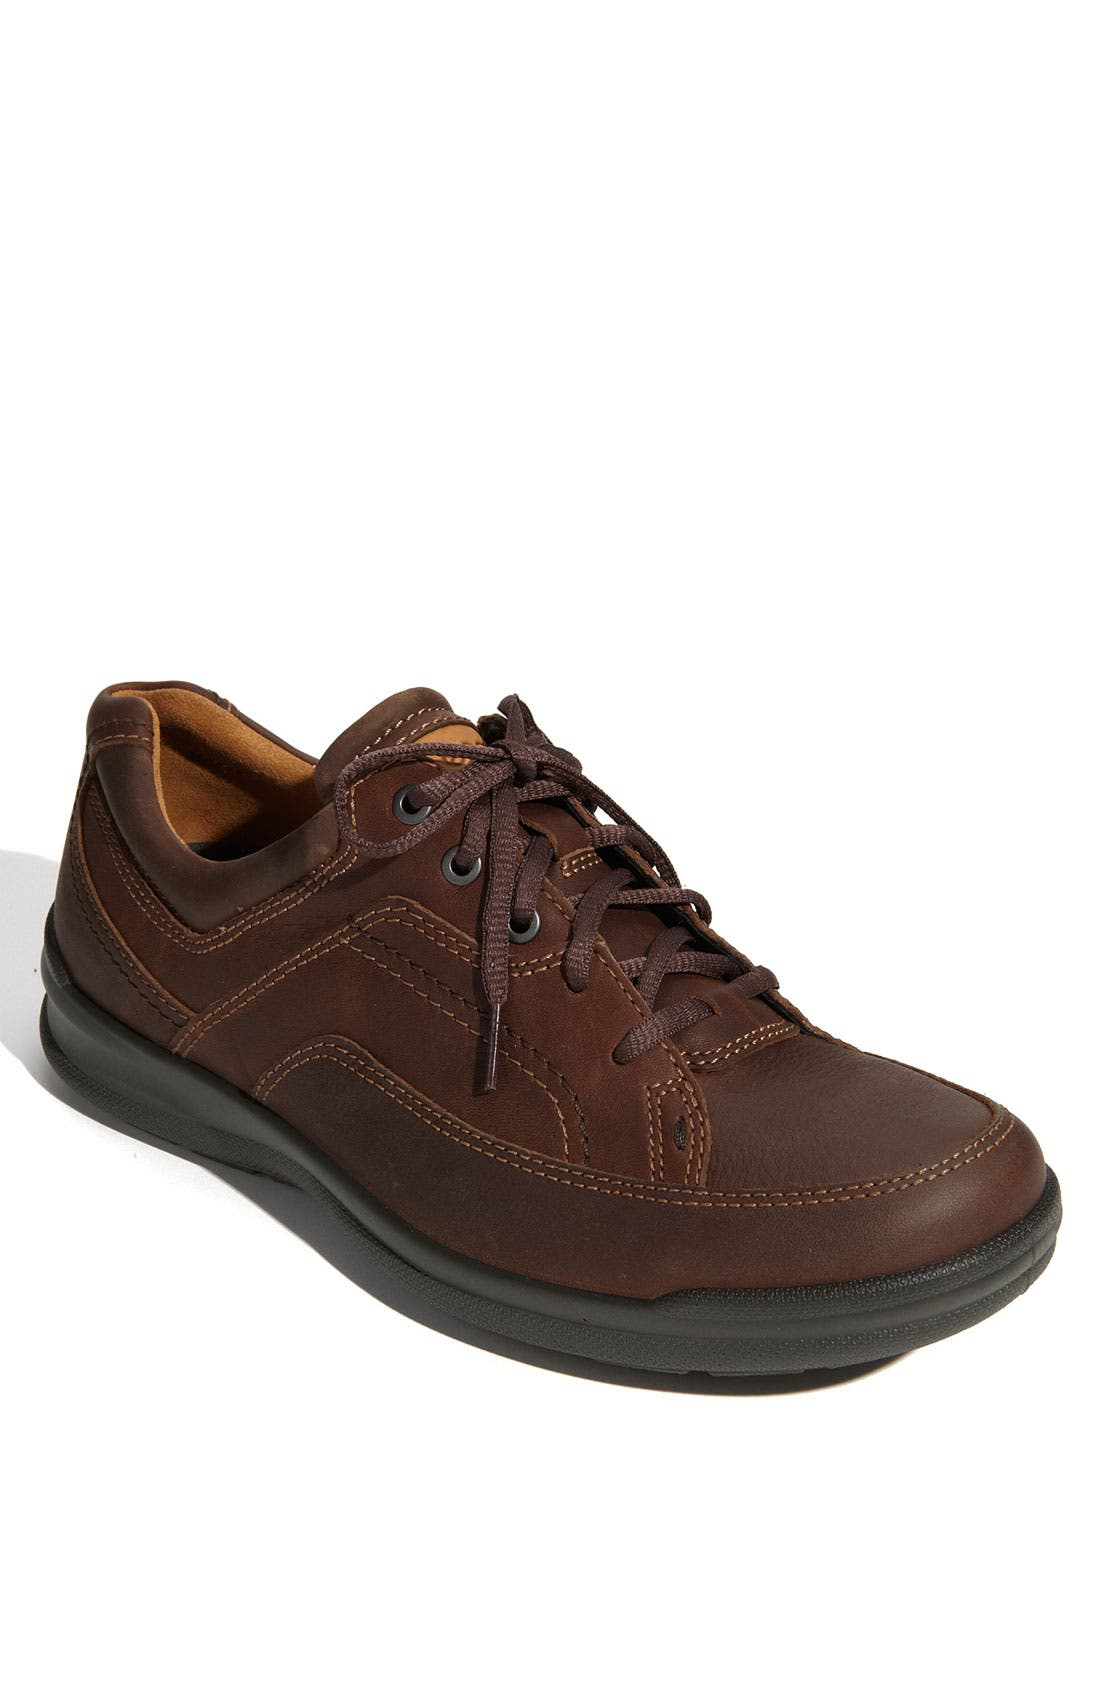 Main Image - ECCO 'Remote' Lace-Up Oxford